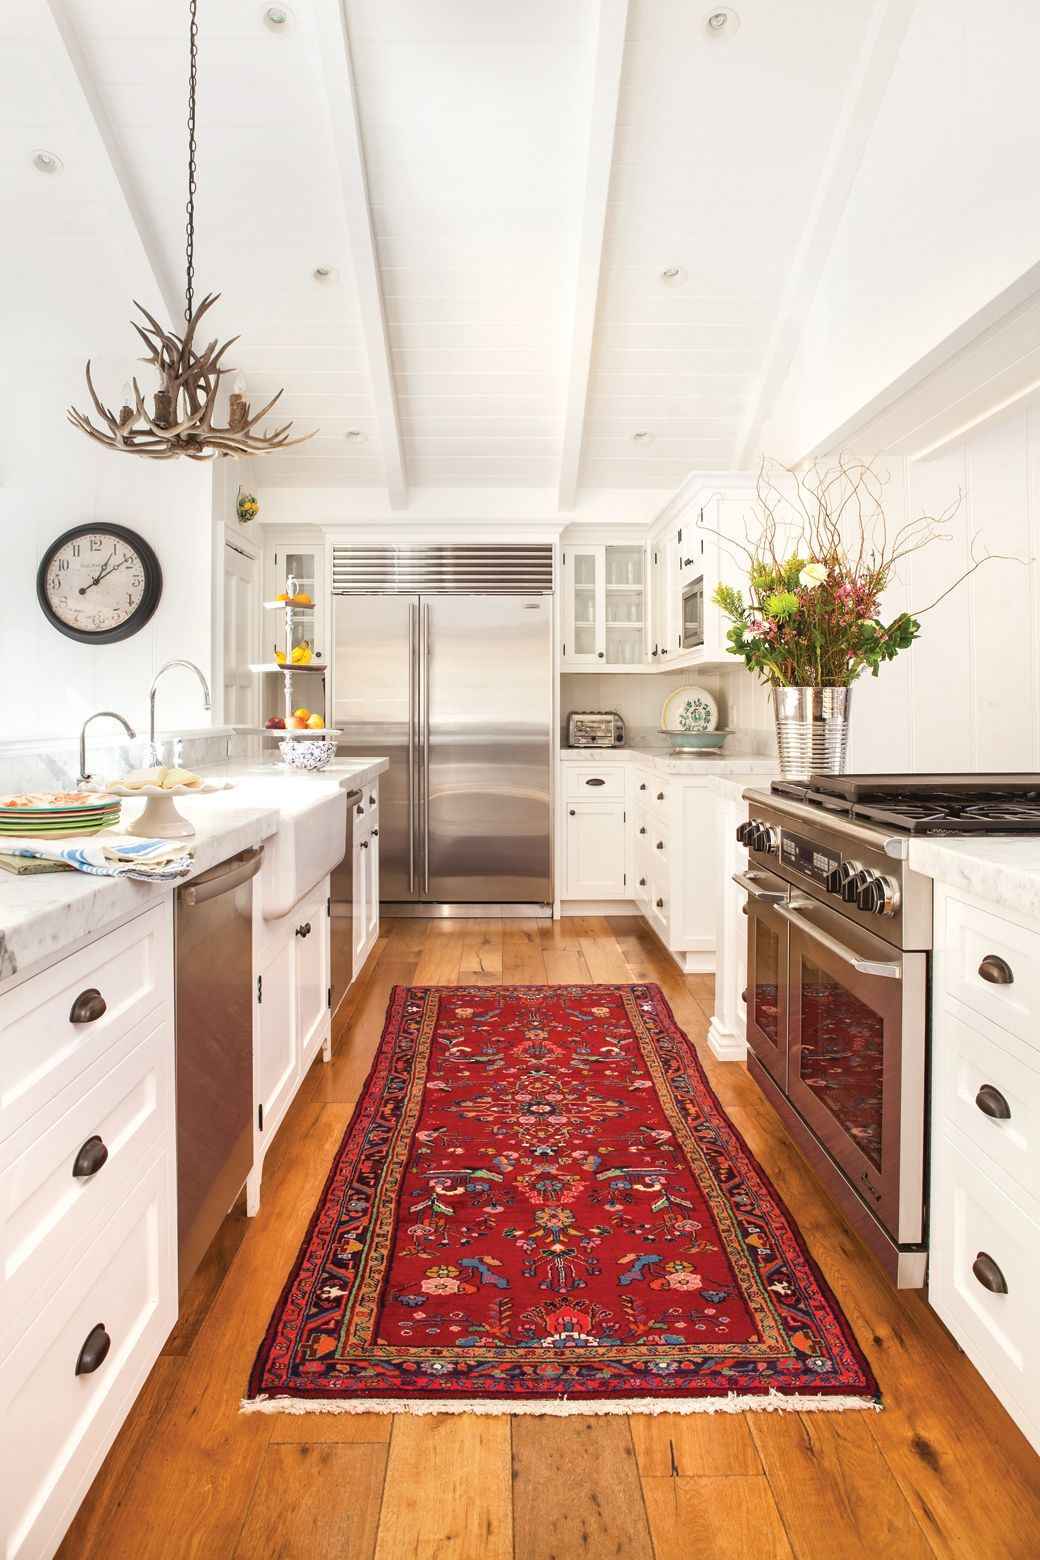 3 Classic American Cottage Styles to Know (With images